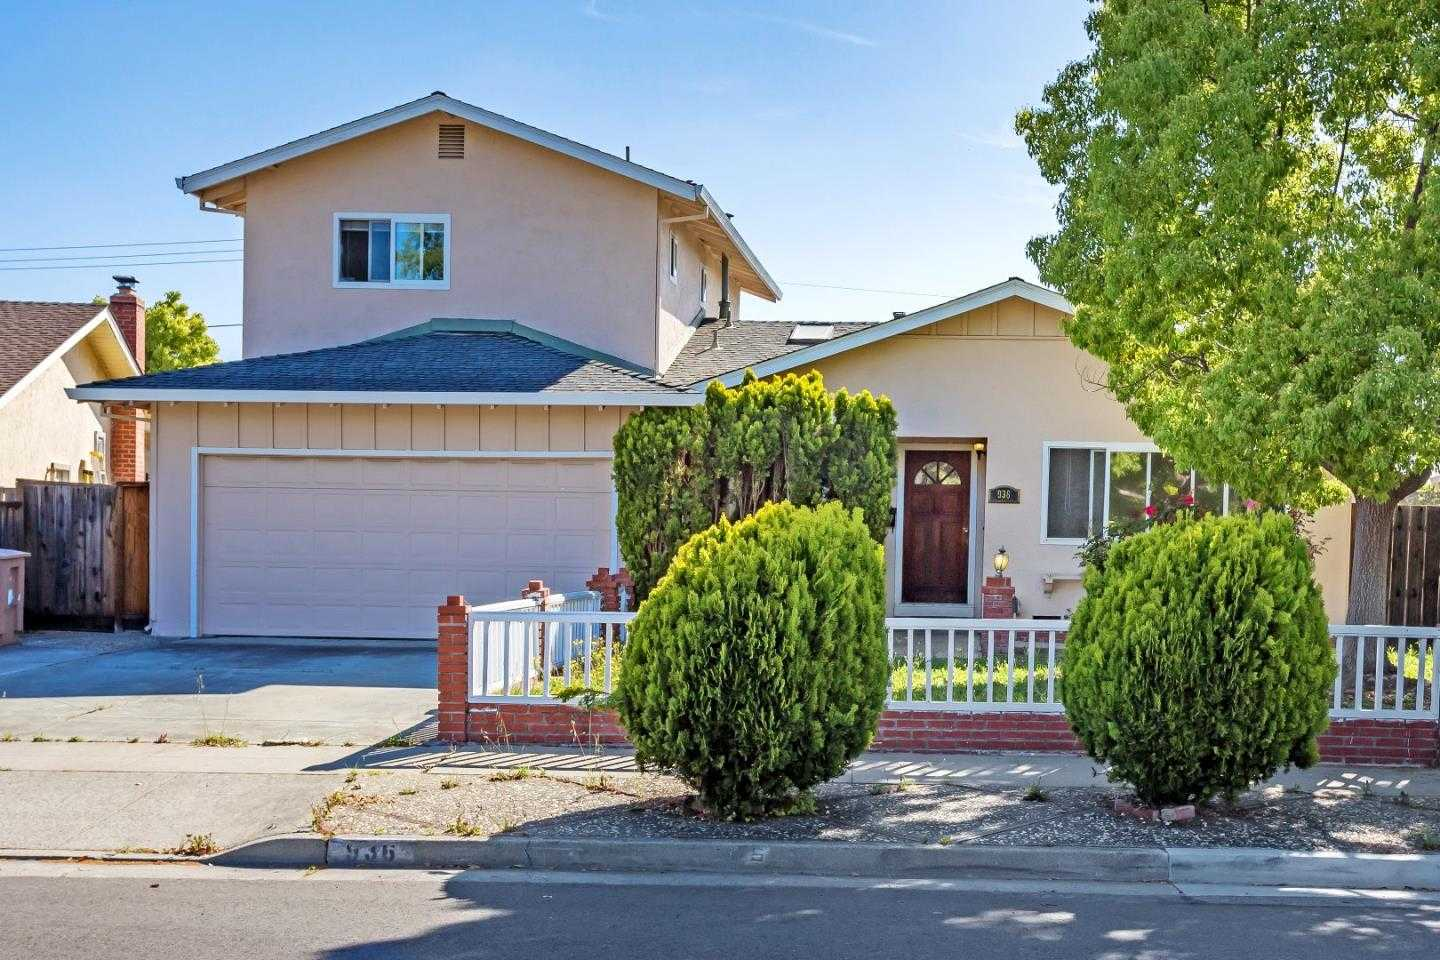 $2,280,000 - 5Br/3Ba -  for Sale in Cupertino